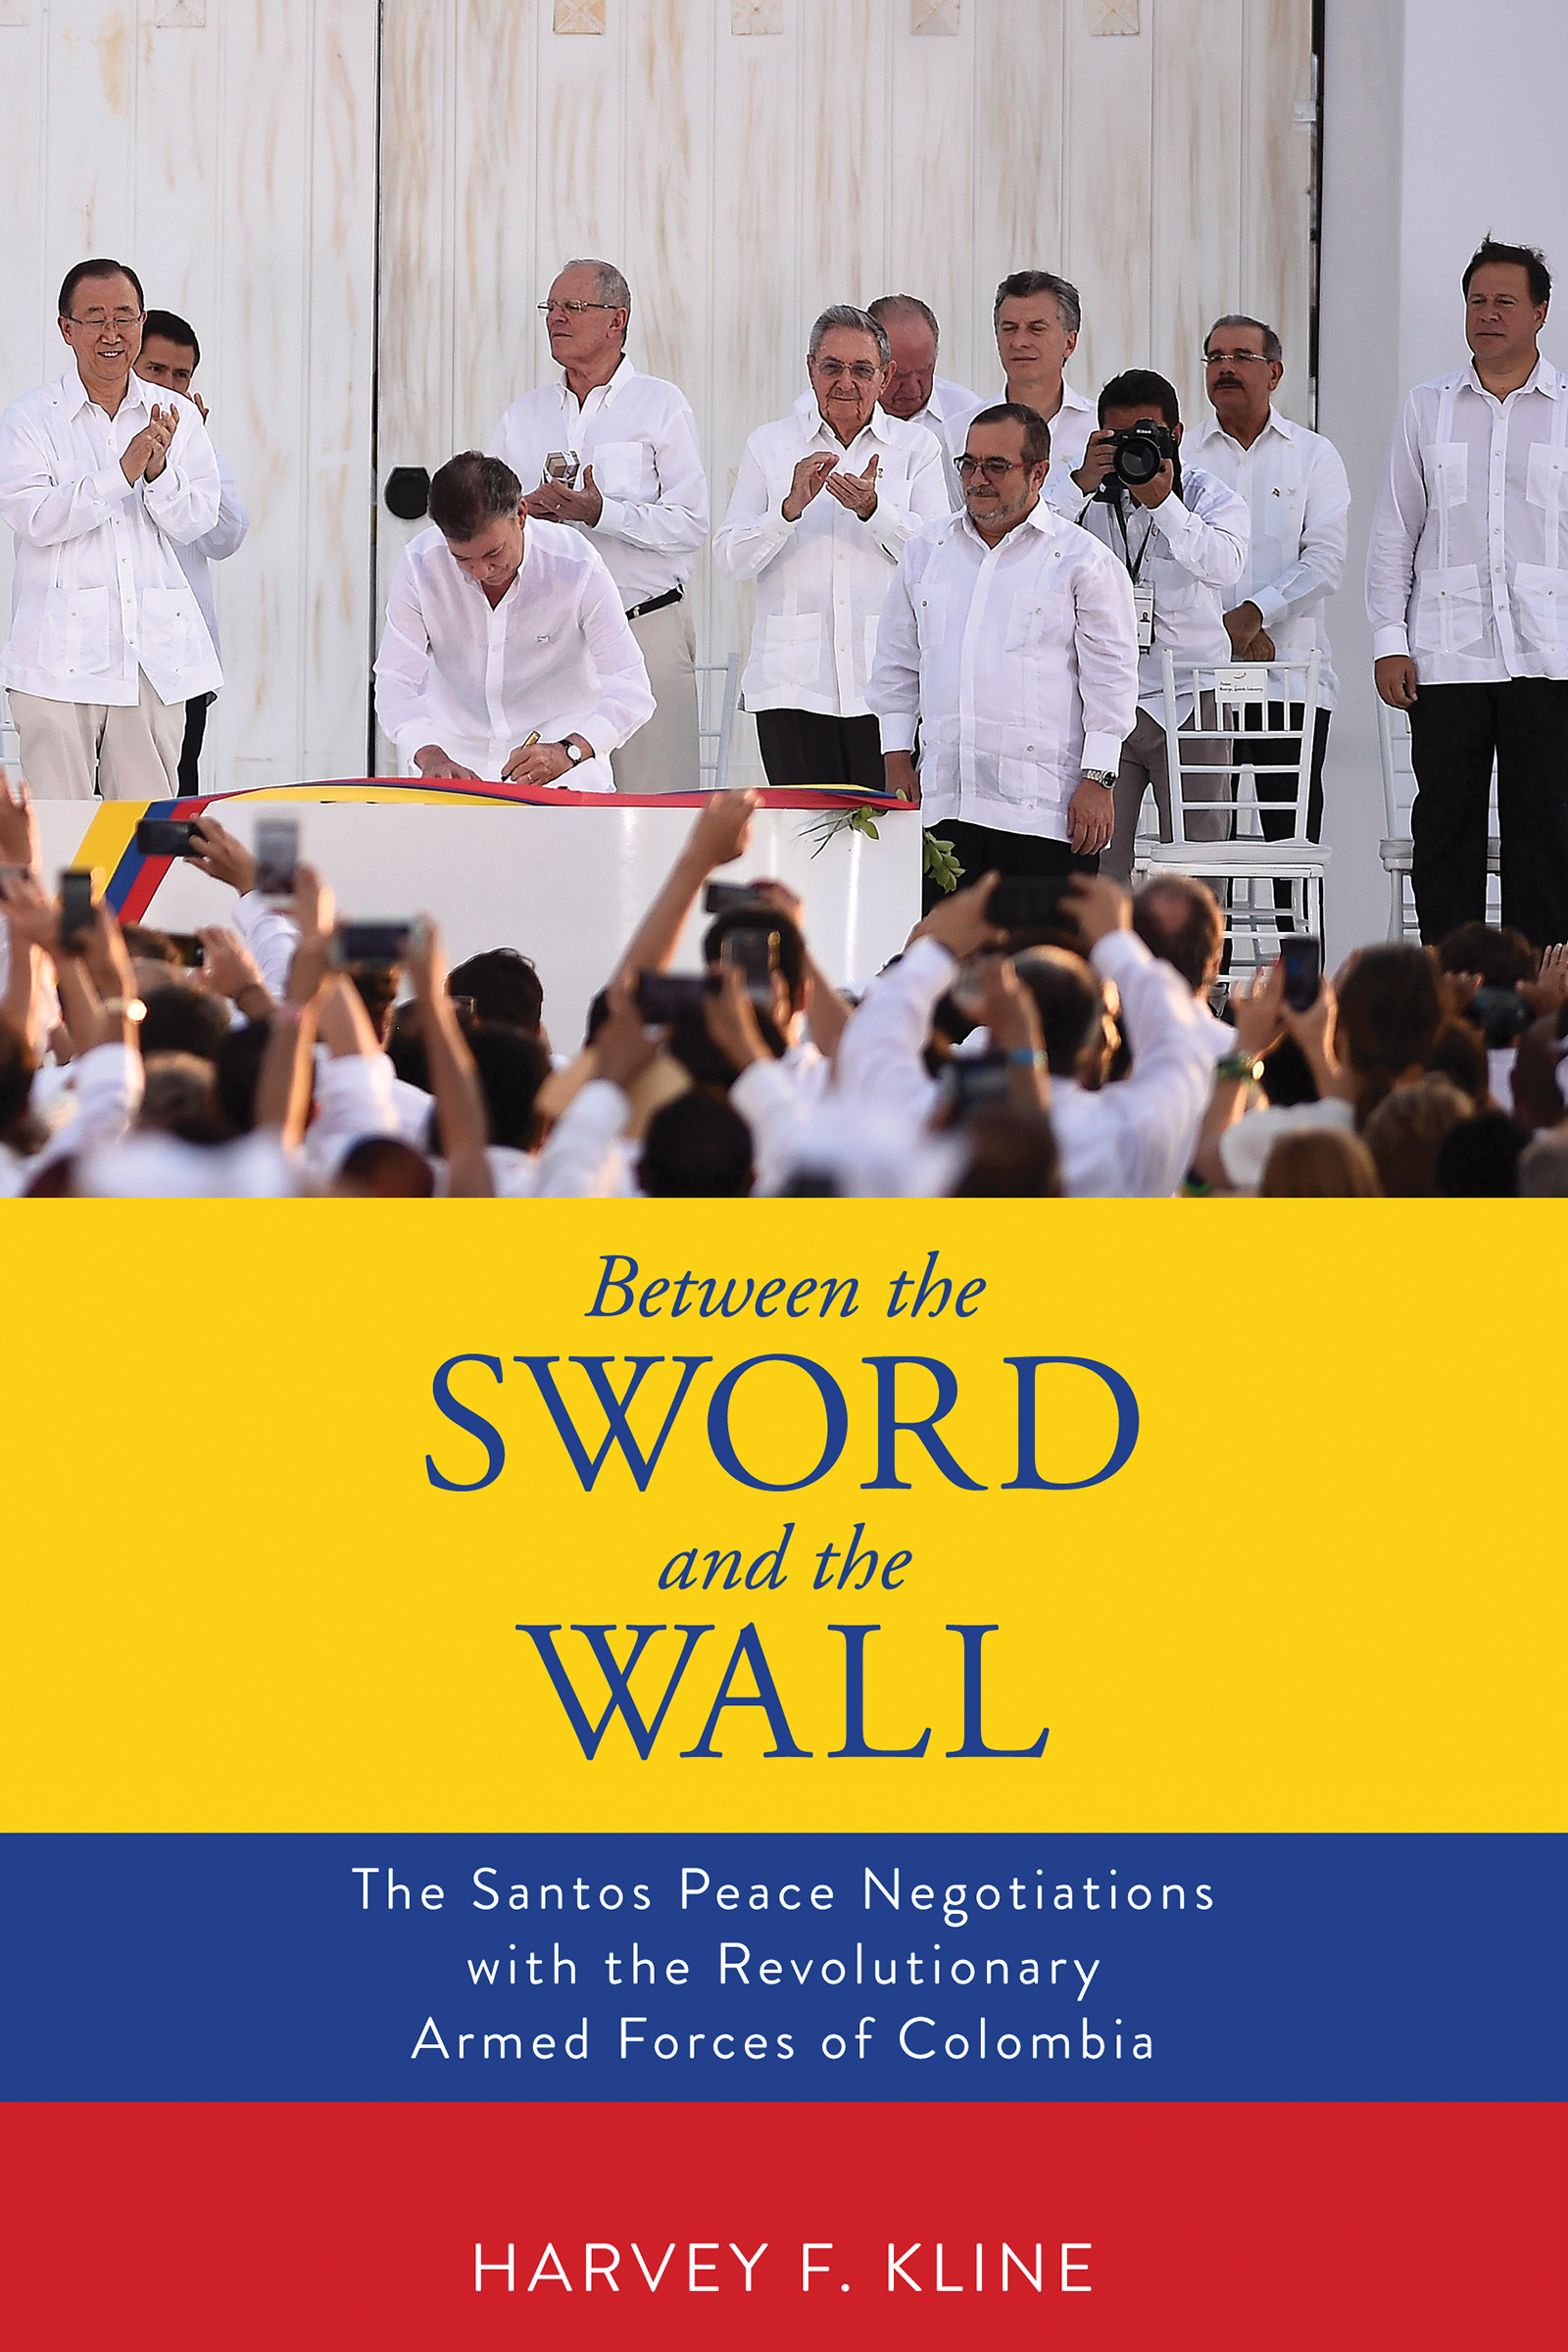 Between the Sword and the Wall: The Santos Peace Negotiations with the Revolutionary Armed Forces of Colombia